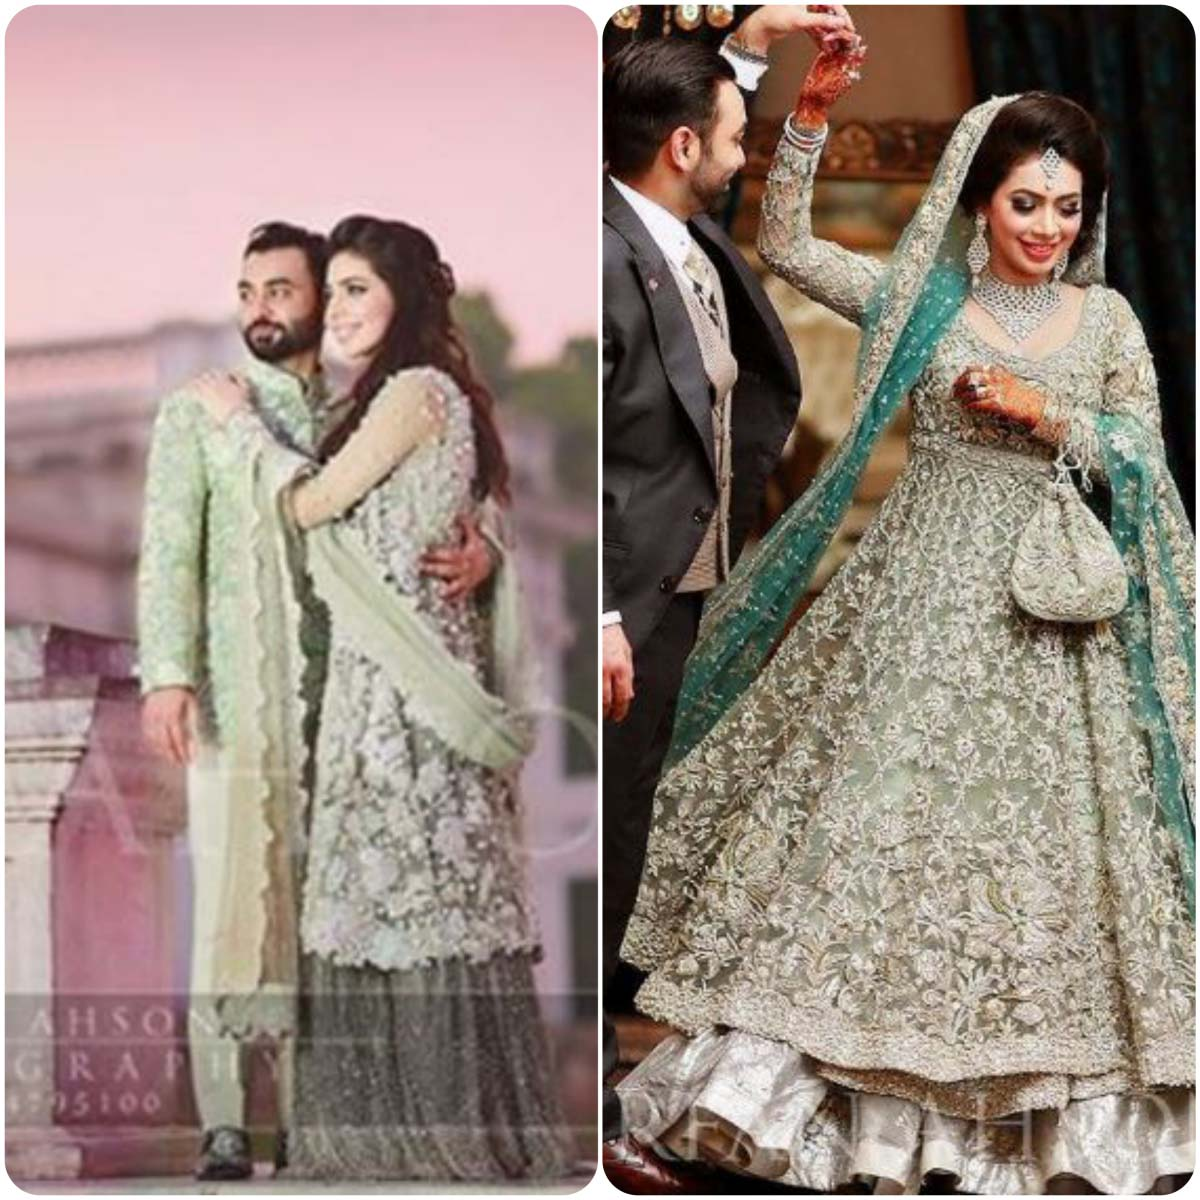 2019 2020 Wedding Trends You Ll Want To Follow: Walima/Reception Dresses For Wedding Bridals